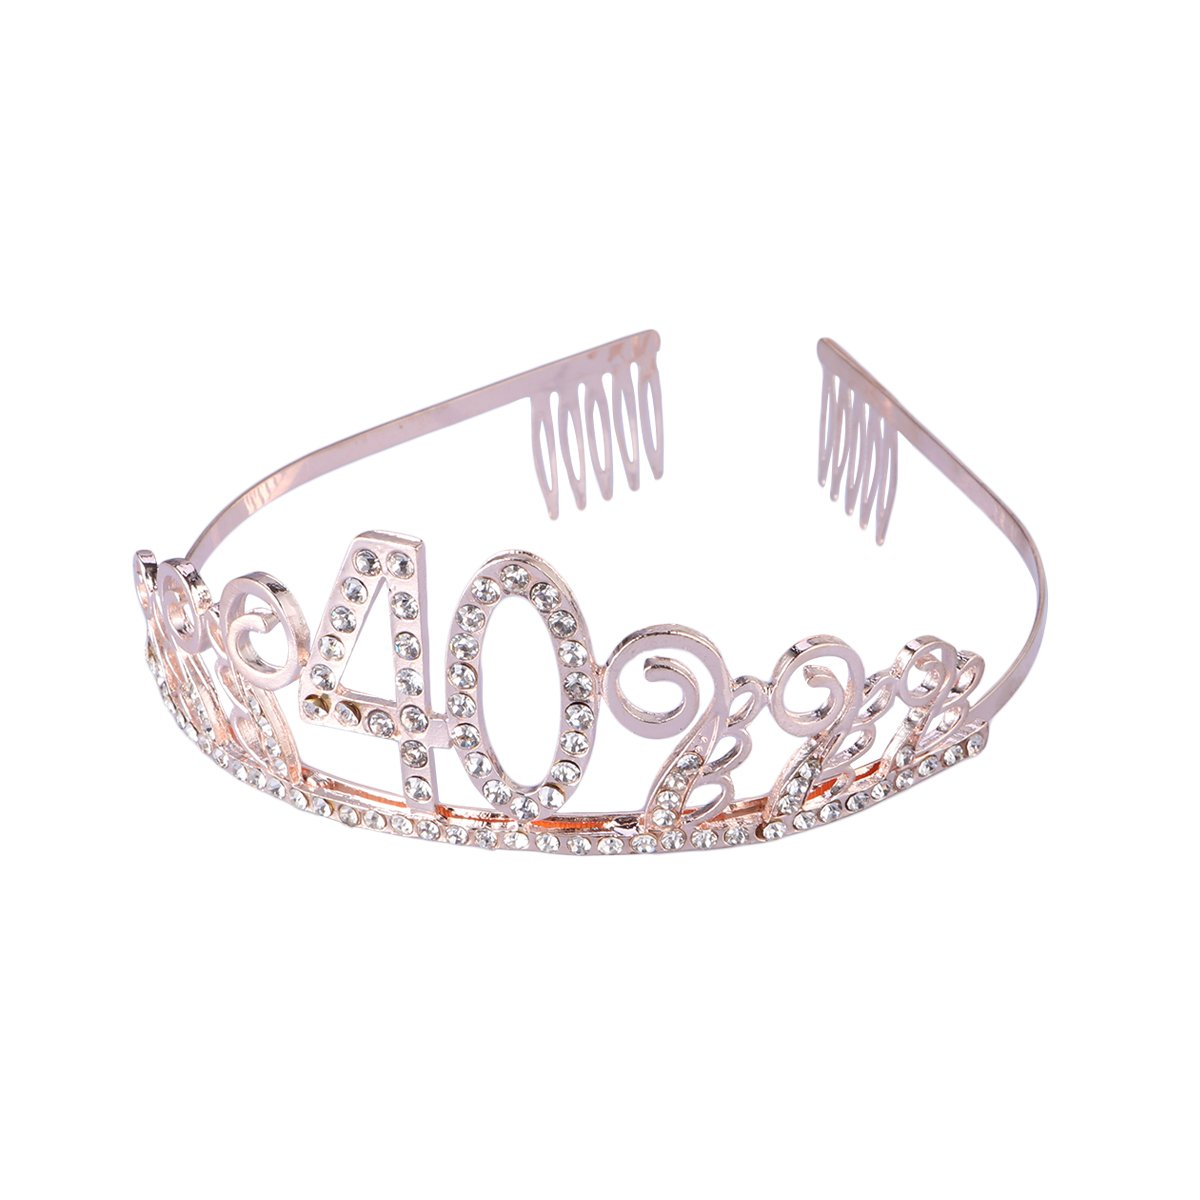 Frcolor 40th Birthday Tiara Crystal Rhinestone Women 40th Birthday Crown with Combs(Rose Gold)